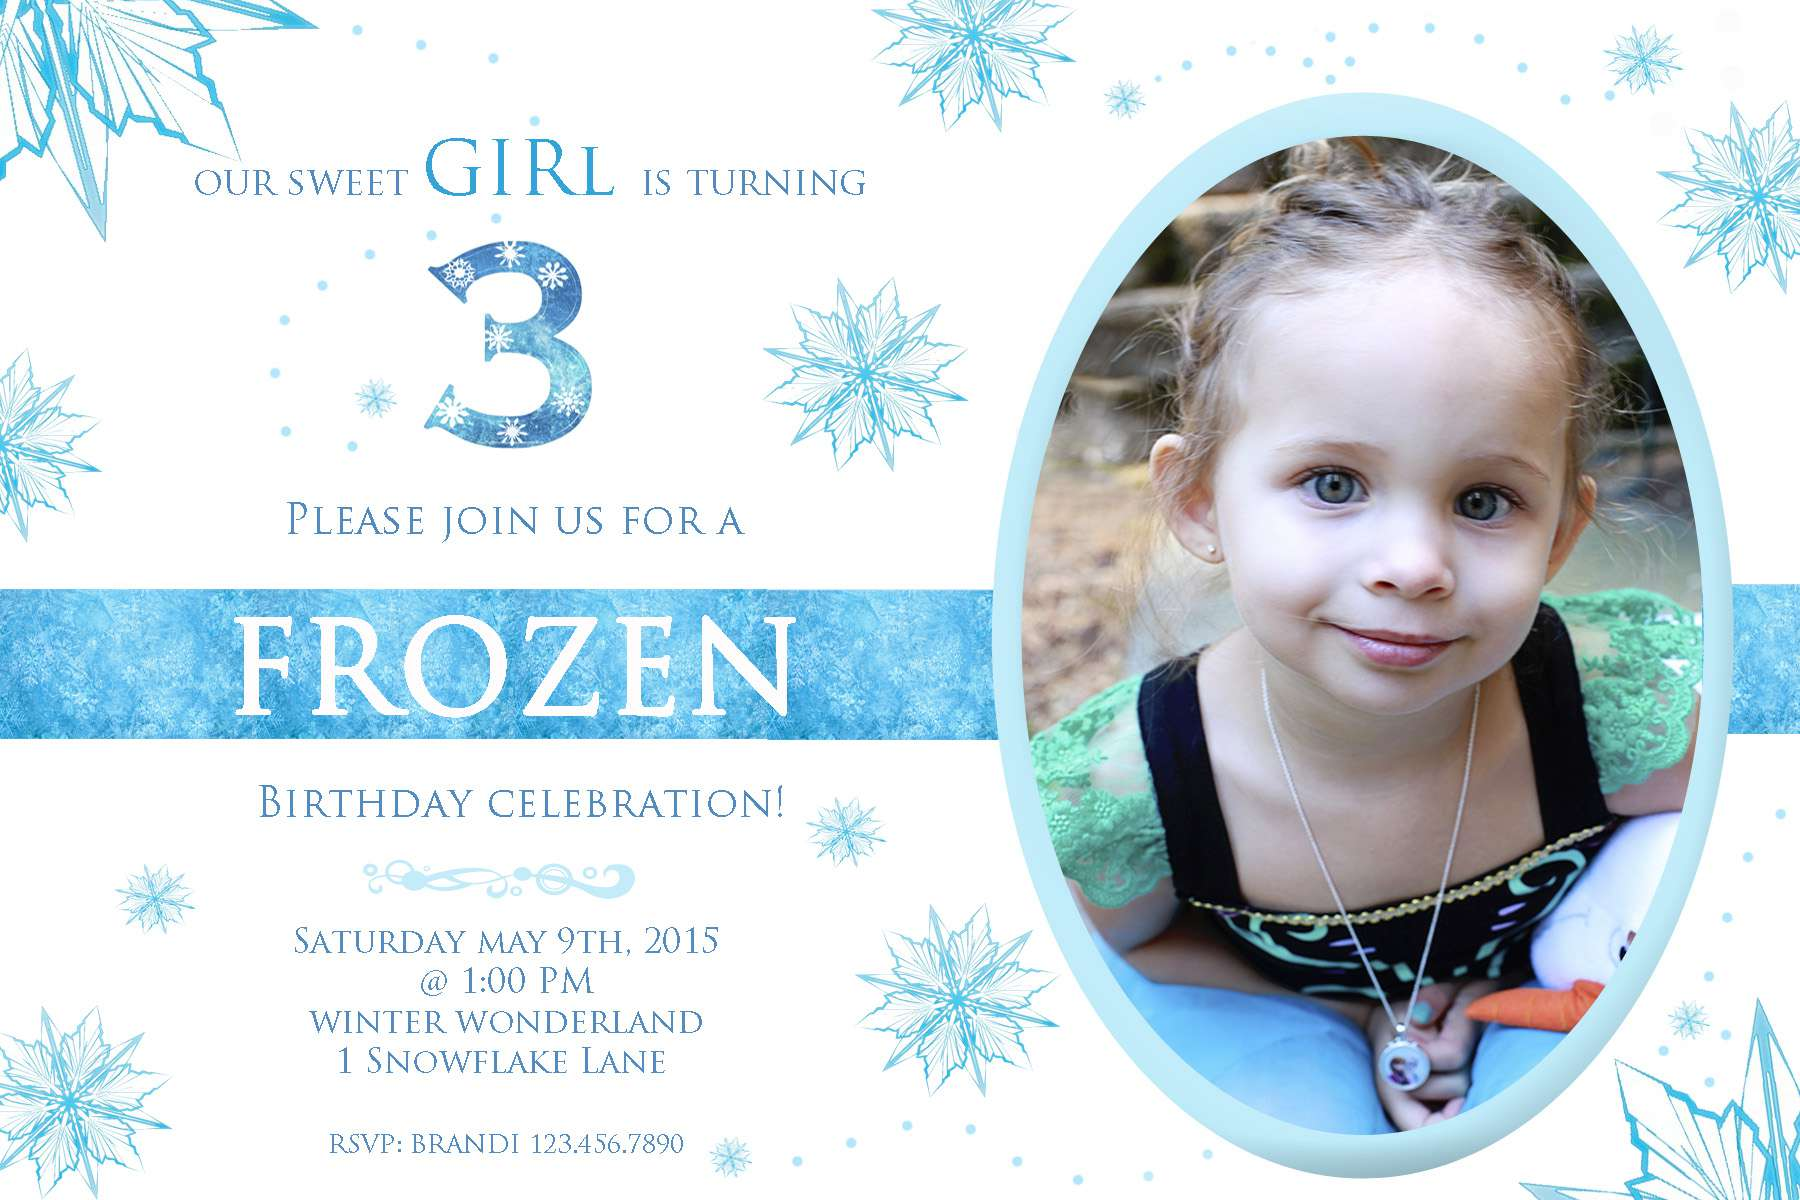 frozen themed birthday invitation templates ; Disney-Frozen-Birthday-Invitation-Templates-and-get-inspiration-to-create-the-birthday-Invitation-design-of-your-dreams-12